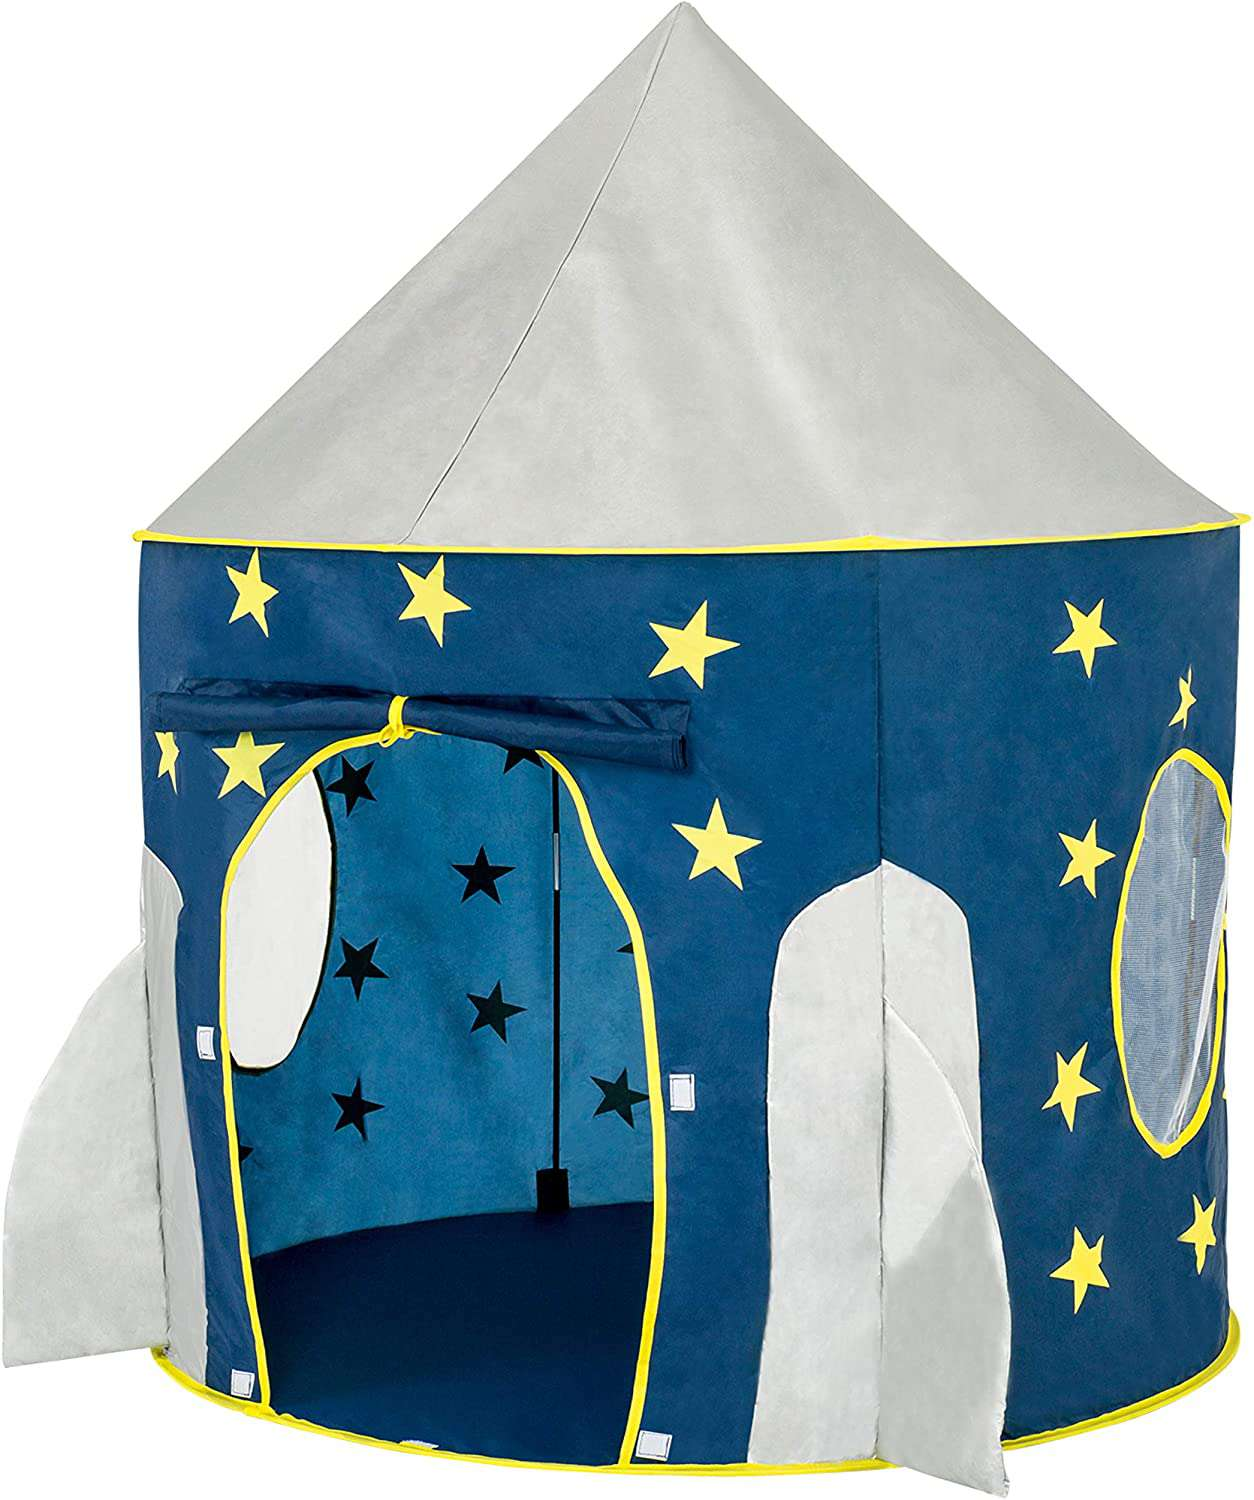 FoxPrint Rocket Ship Space Themed Pretend Play Tent